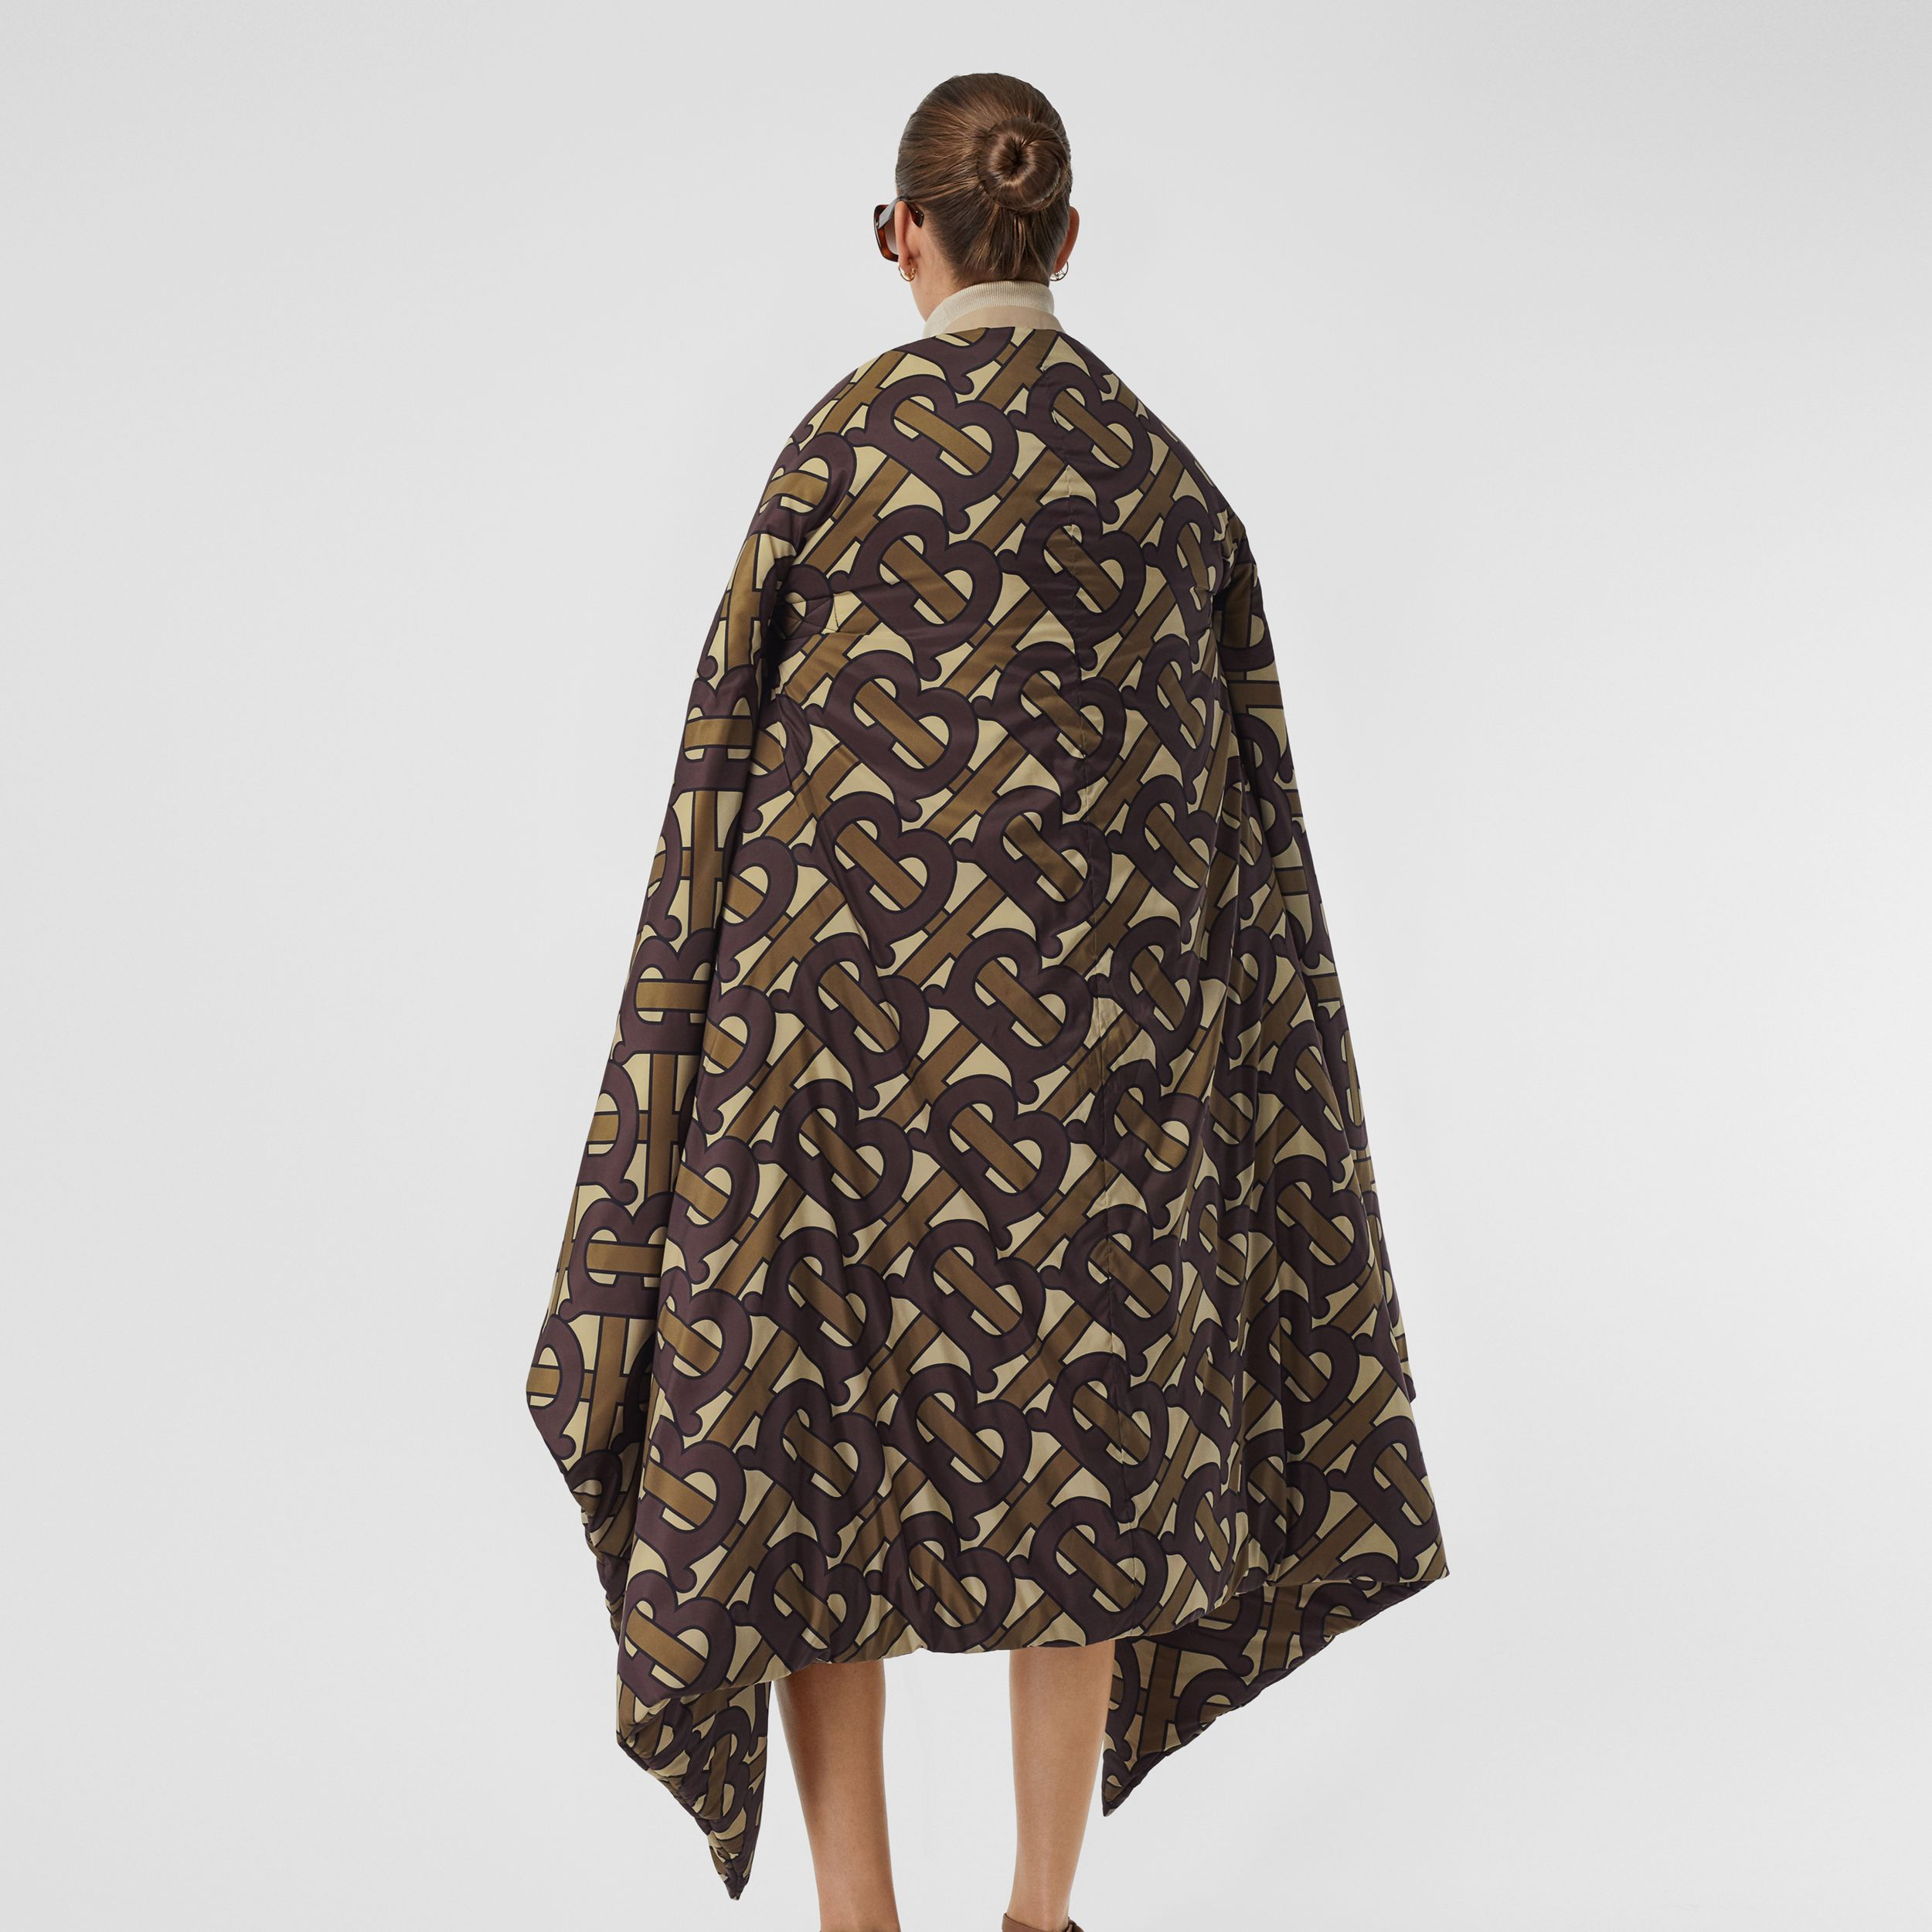 Monogram Print Oversized Puffer Cape in Bridle Brown | Burberry Australia - 2